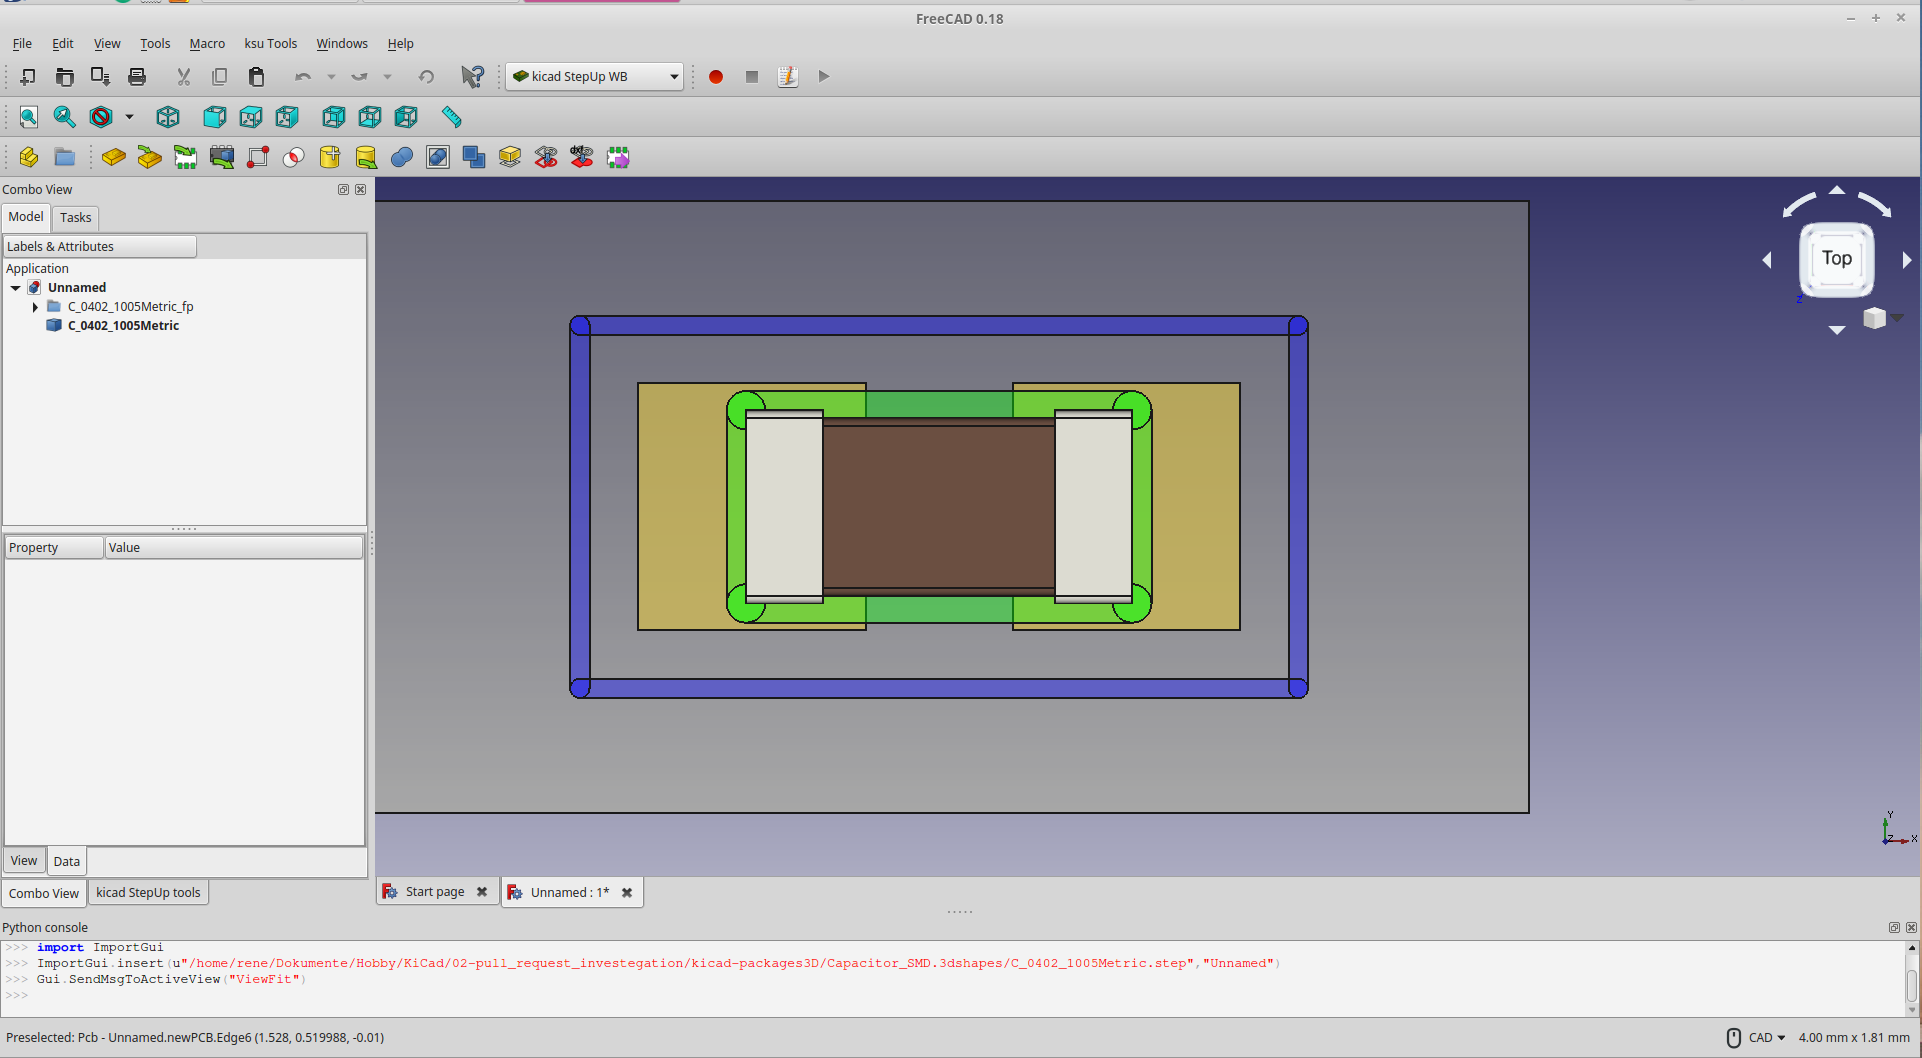 Kicad V5 Export To Step Issues 3d Models Kicadinfo Forums Posts With Printed Circuit Boards Label Screenshot20from202018 07 262019 40 20 Screenshot From 2018 26 19 201922x1058 123 Kb